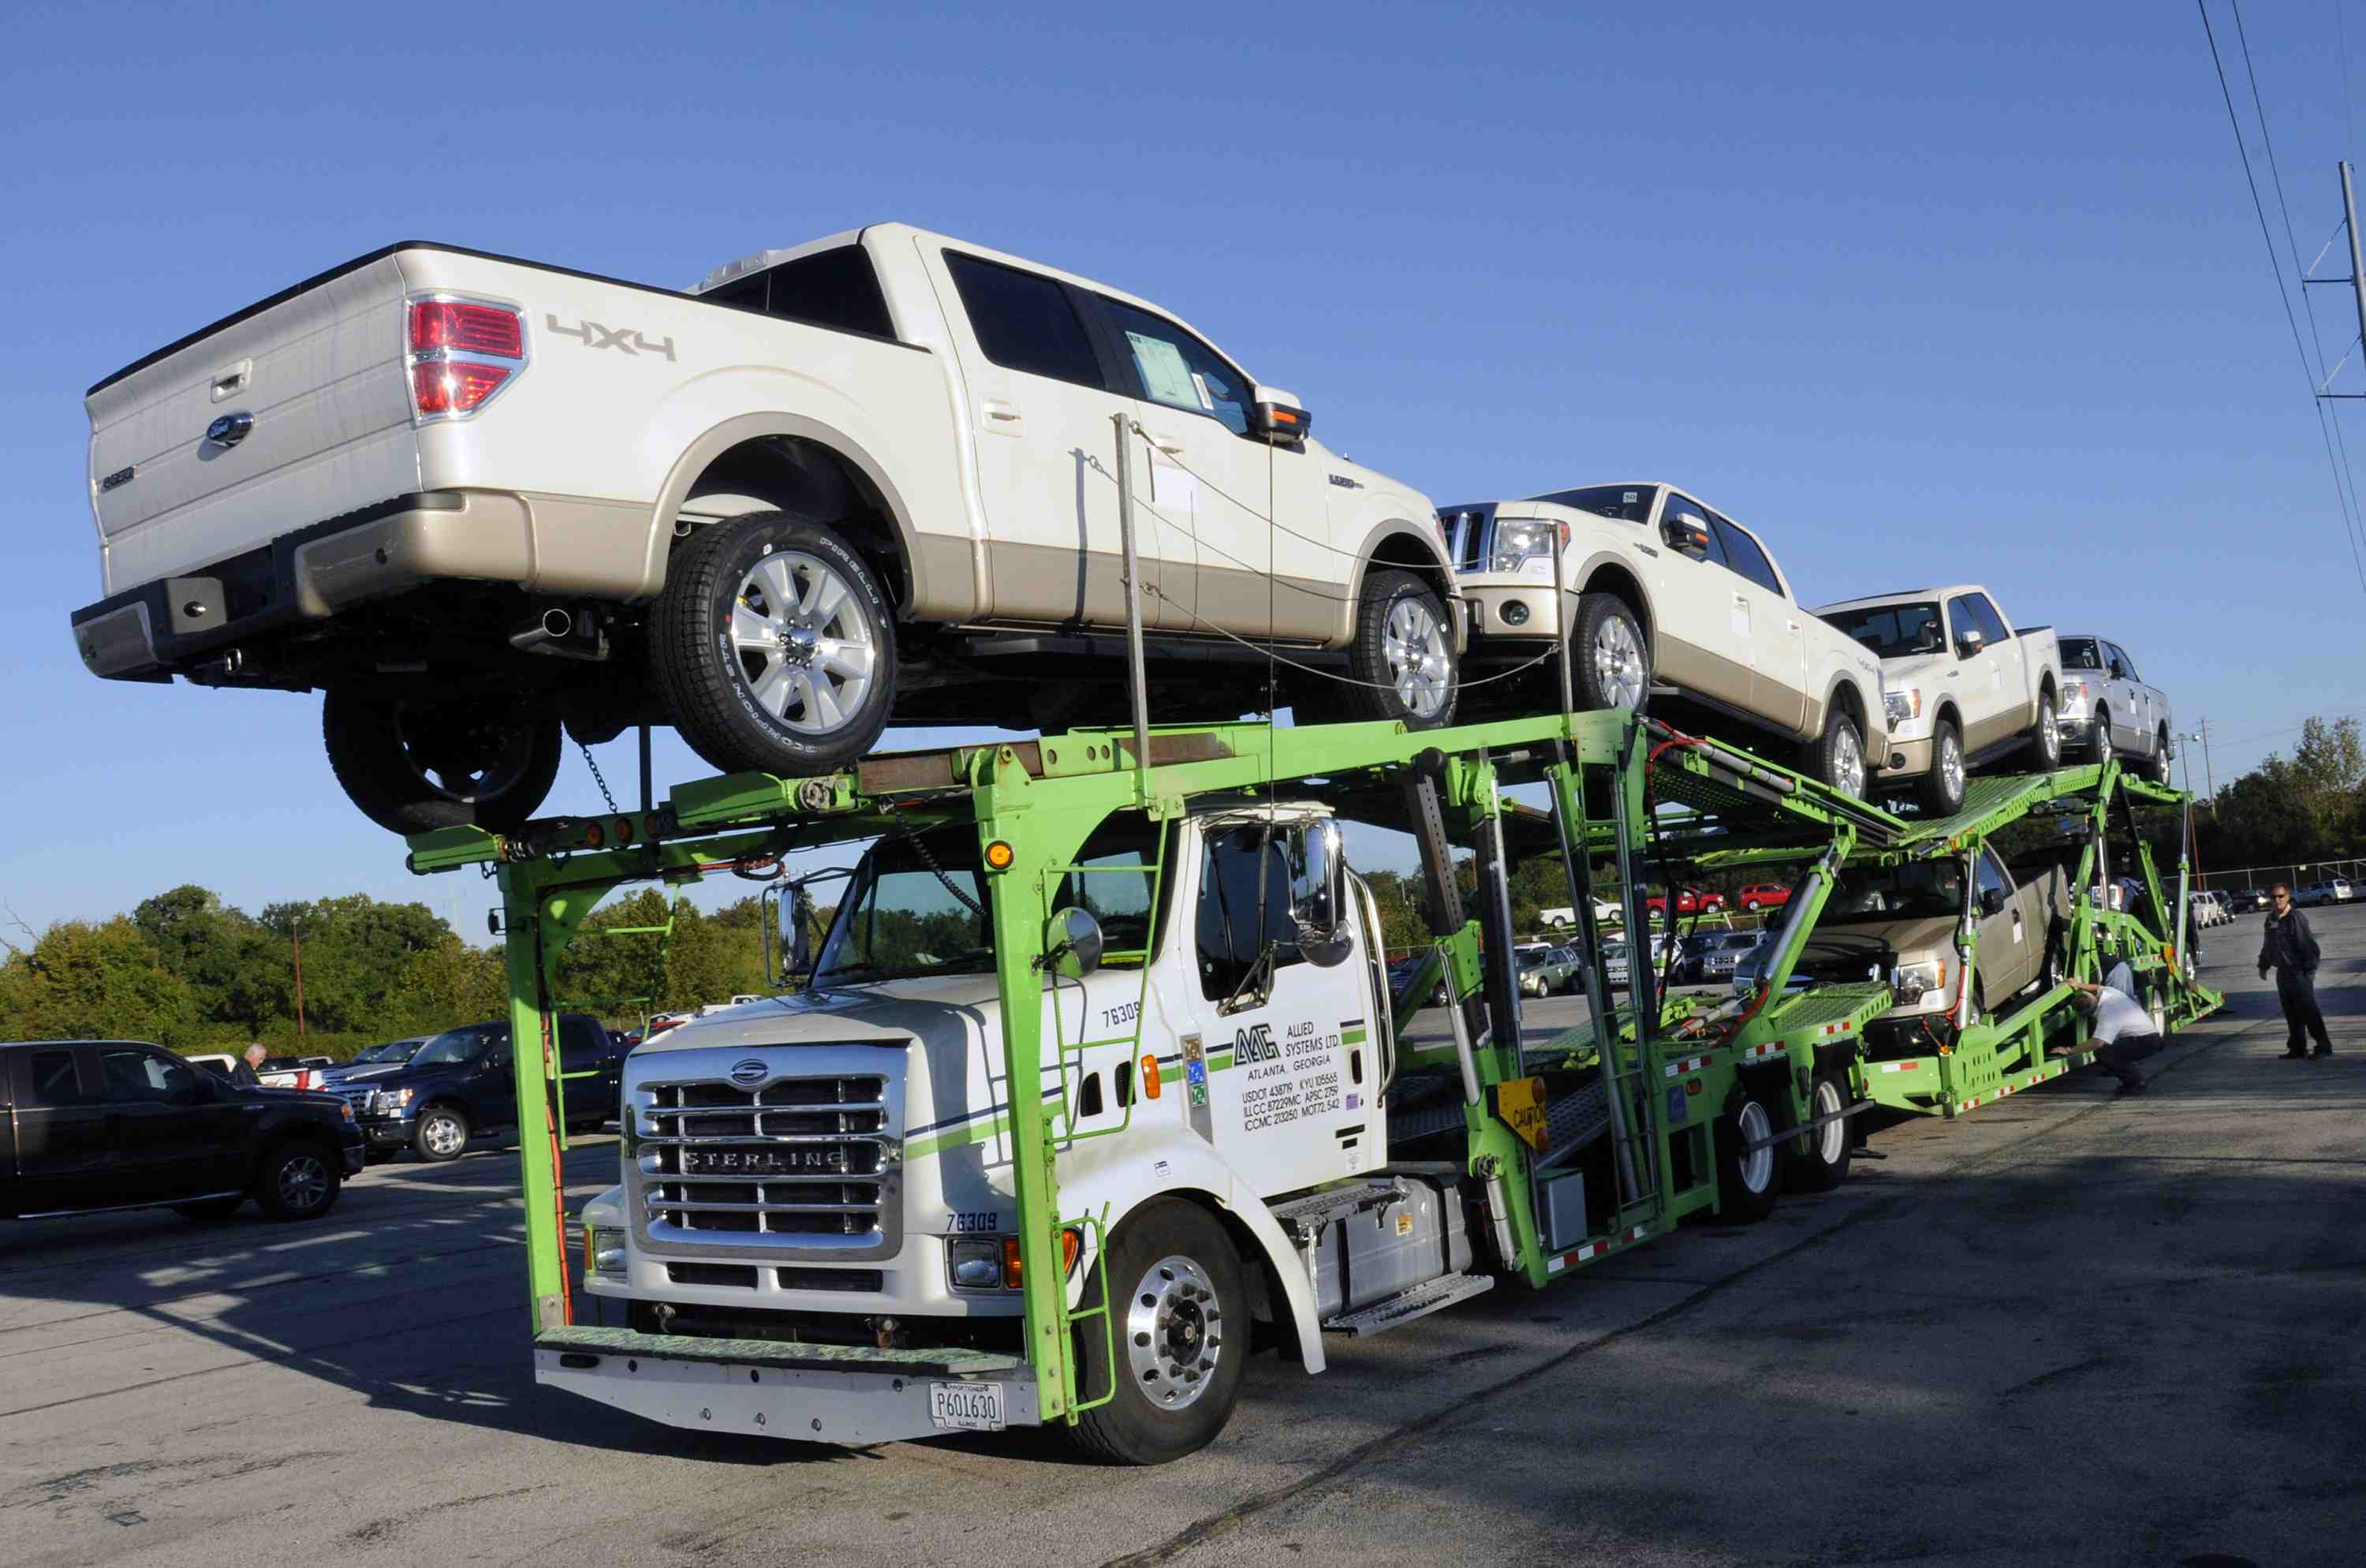 Claycomo mo october 3 2008 the first shipment of new 2009 ford 150 trucks the most capable pickup with unsurpassed fuel economy leave kansas city